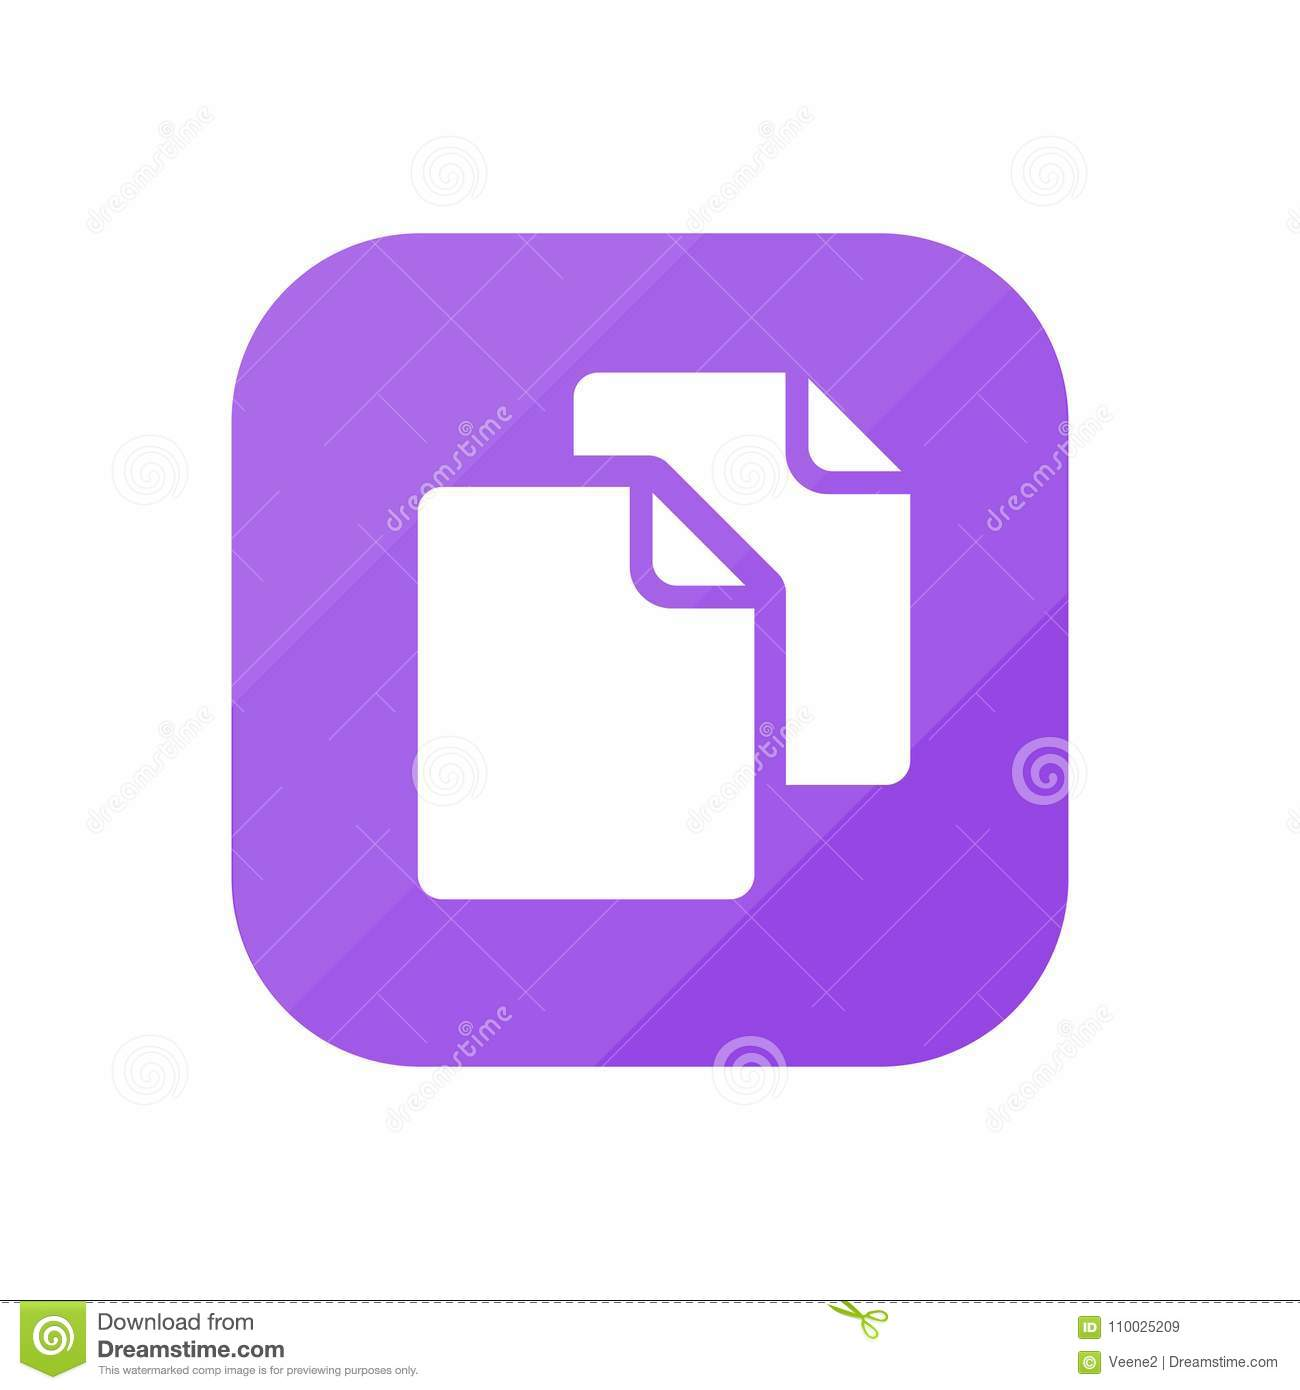 Exemplaar - App Pictogram